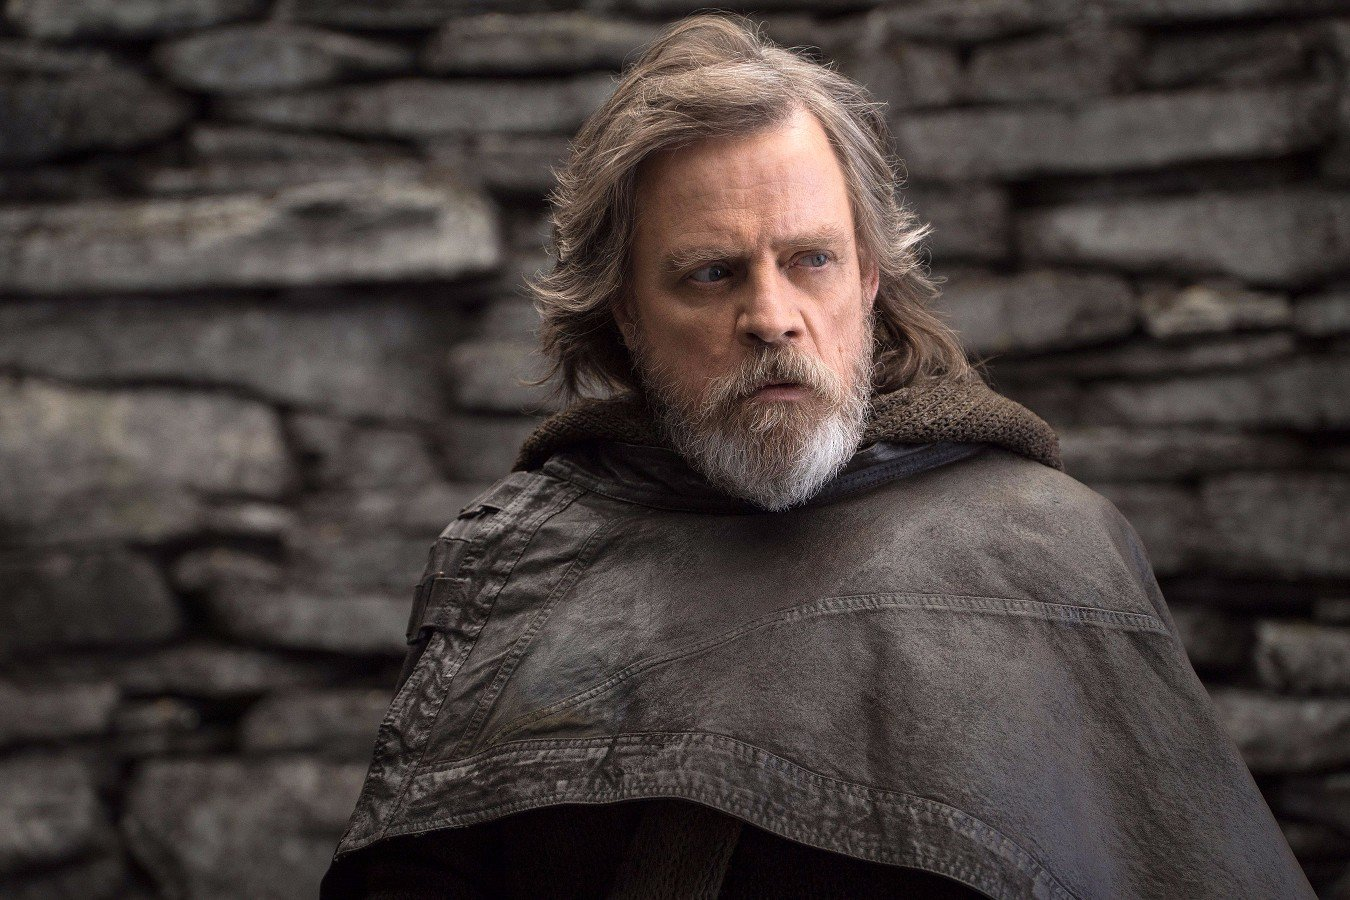 A Blind Luke Skywalker? The Last Jedi's Rian Johnson Once Toyed With The Idea